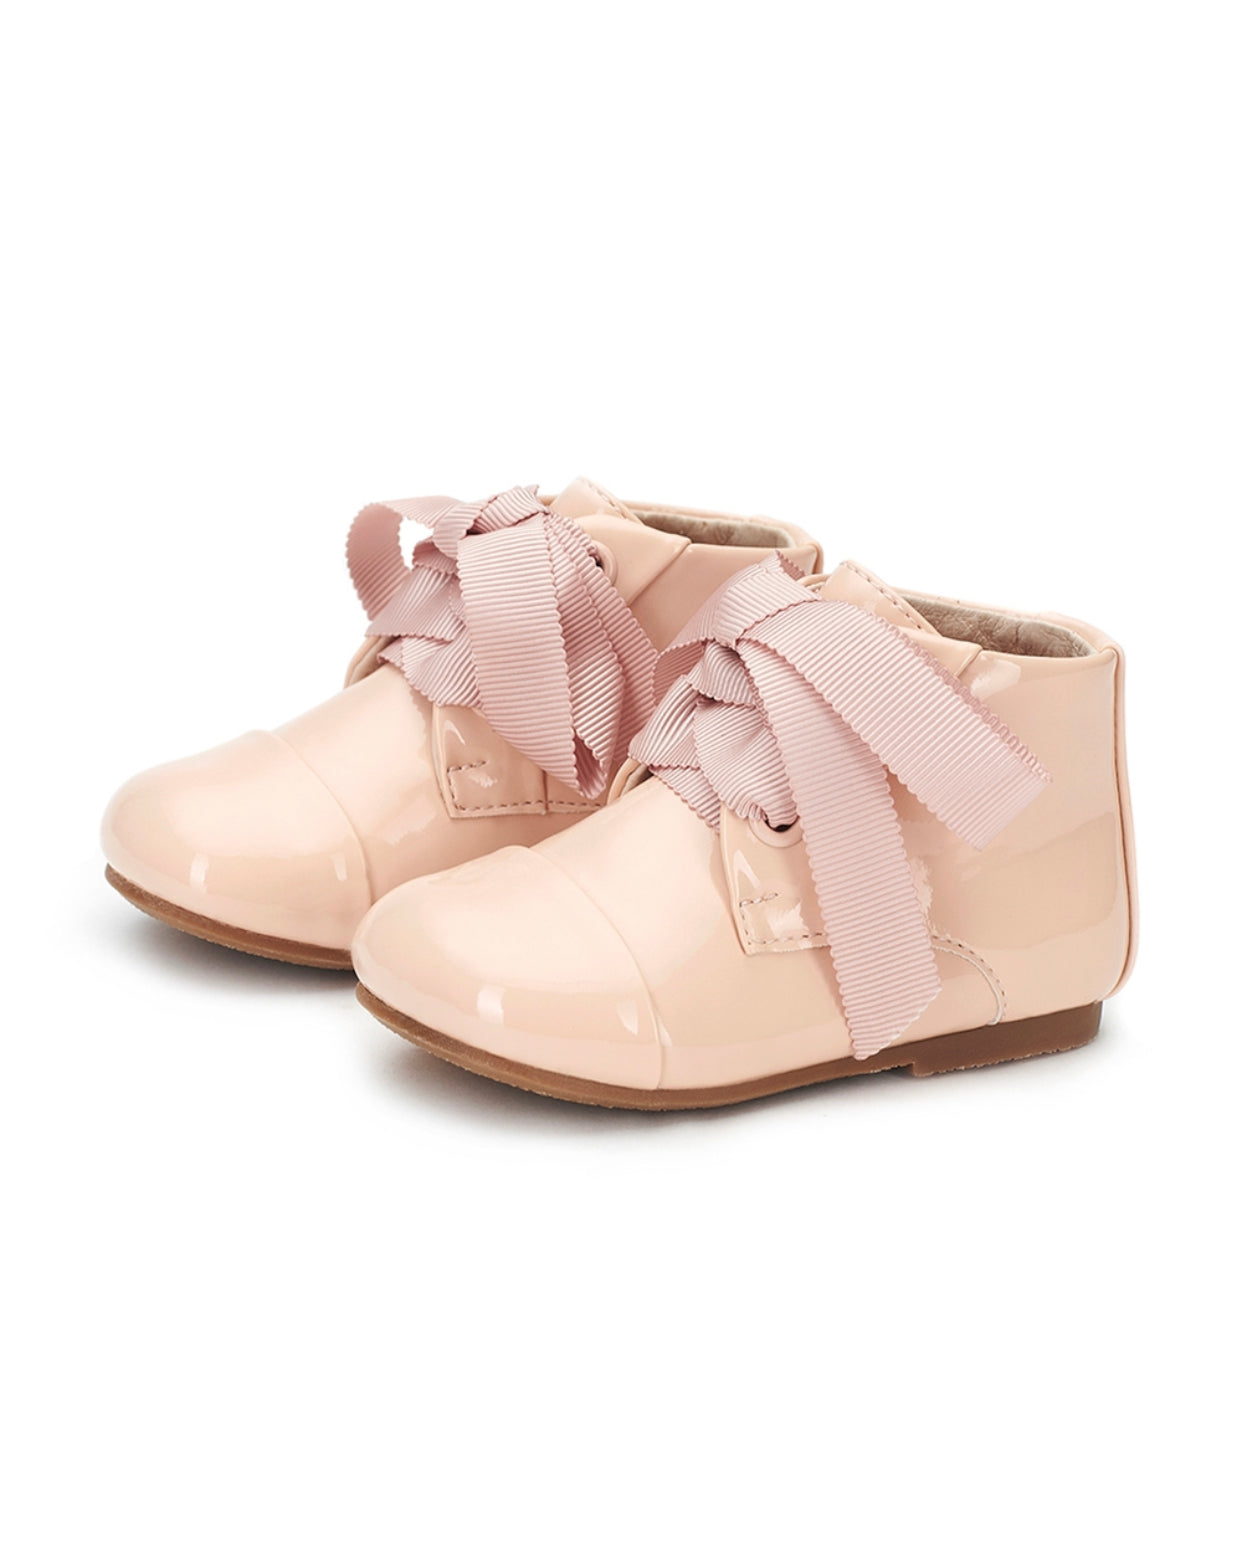 Age of Innocence Jane Boots in Pink